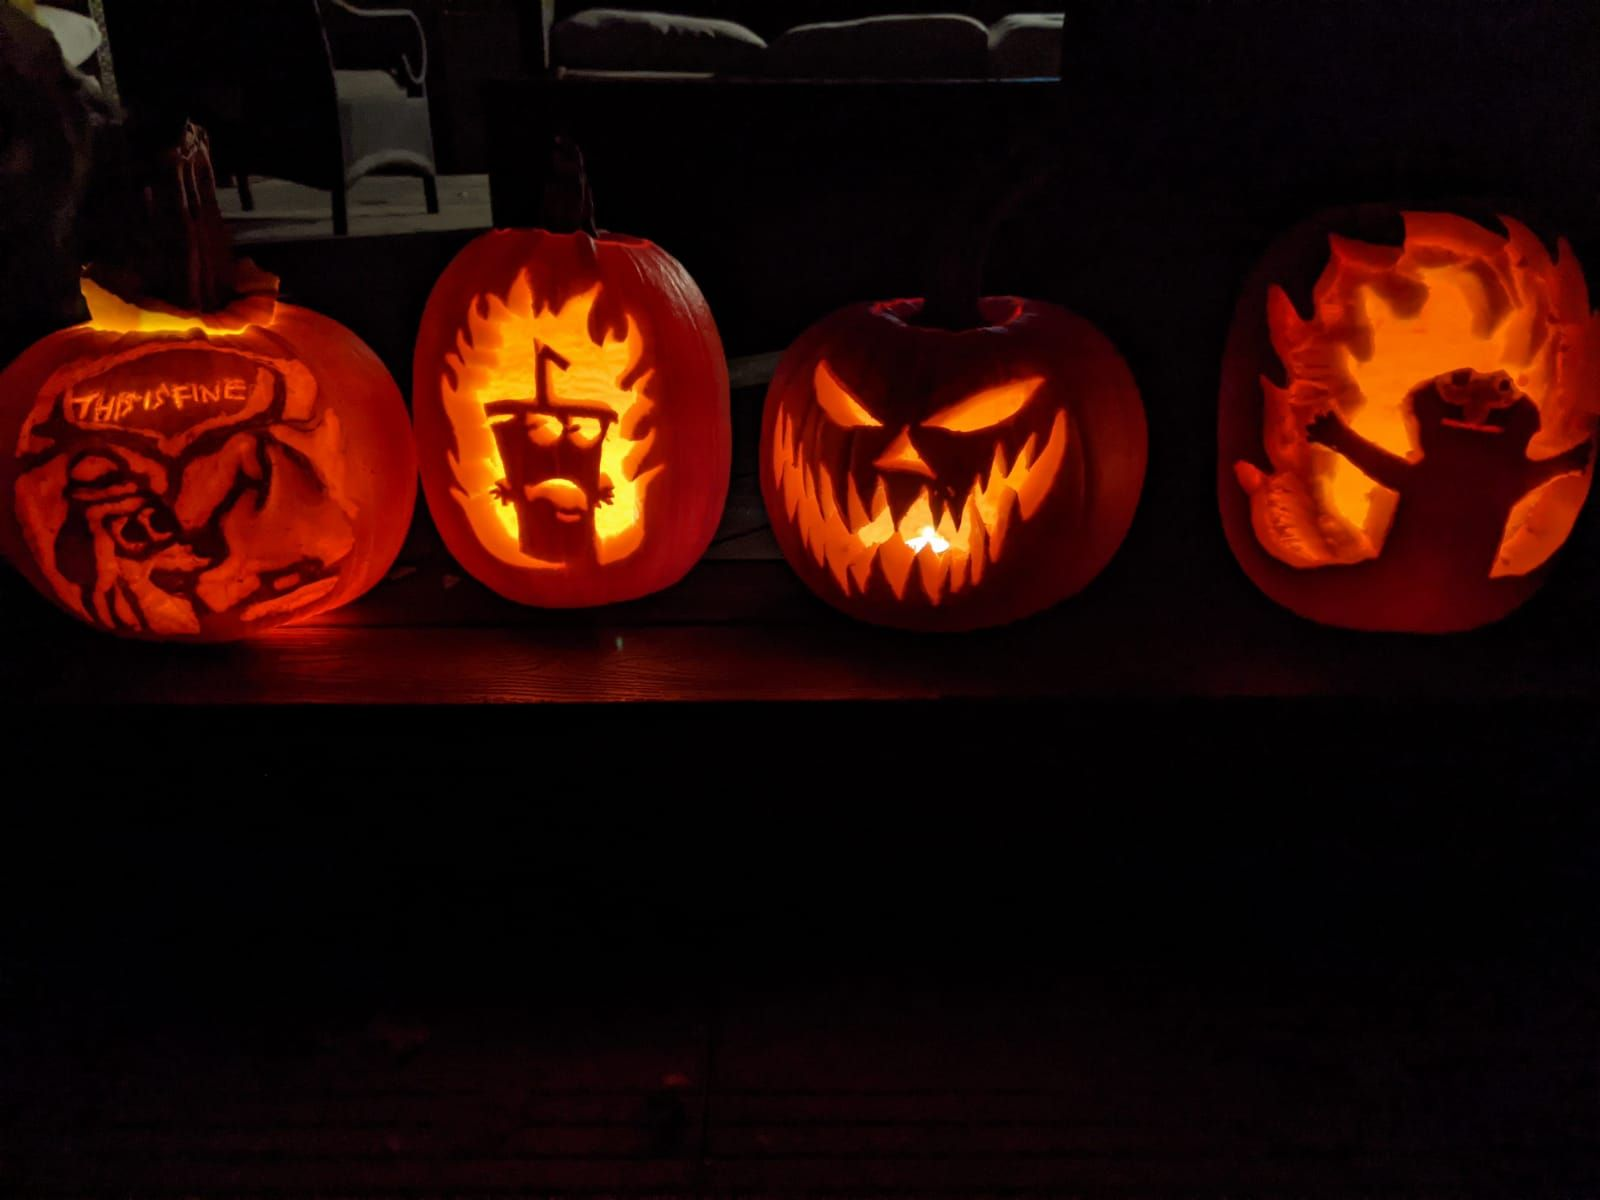 Not sure if this really counts for this sub but I find a few of our pumpkins for this Halloween funny